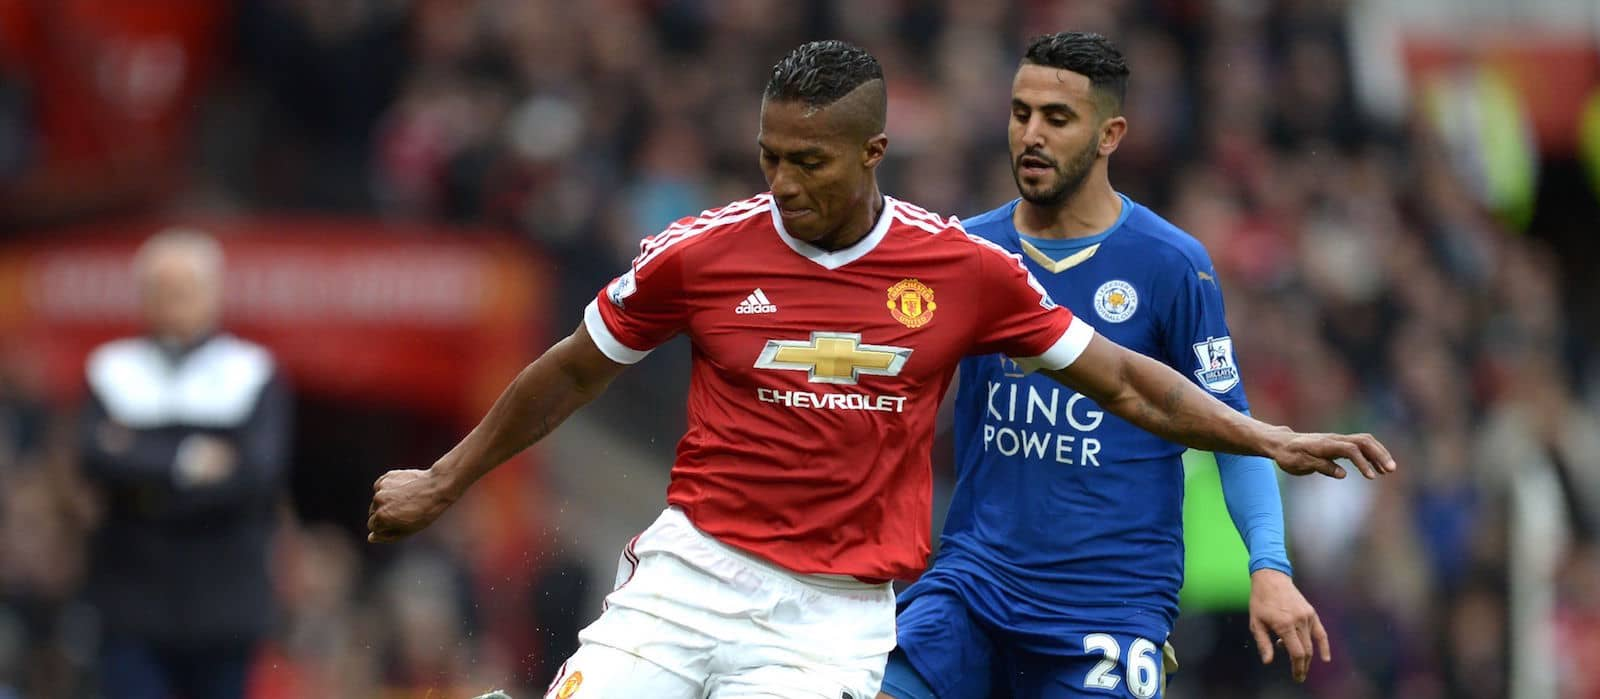 Antonio Valencia ready for Man United's end of season awards